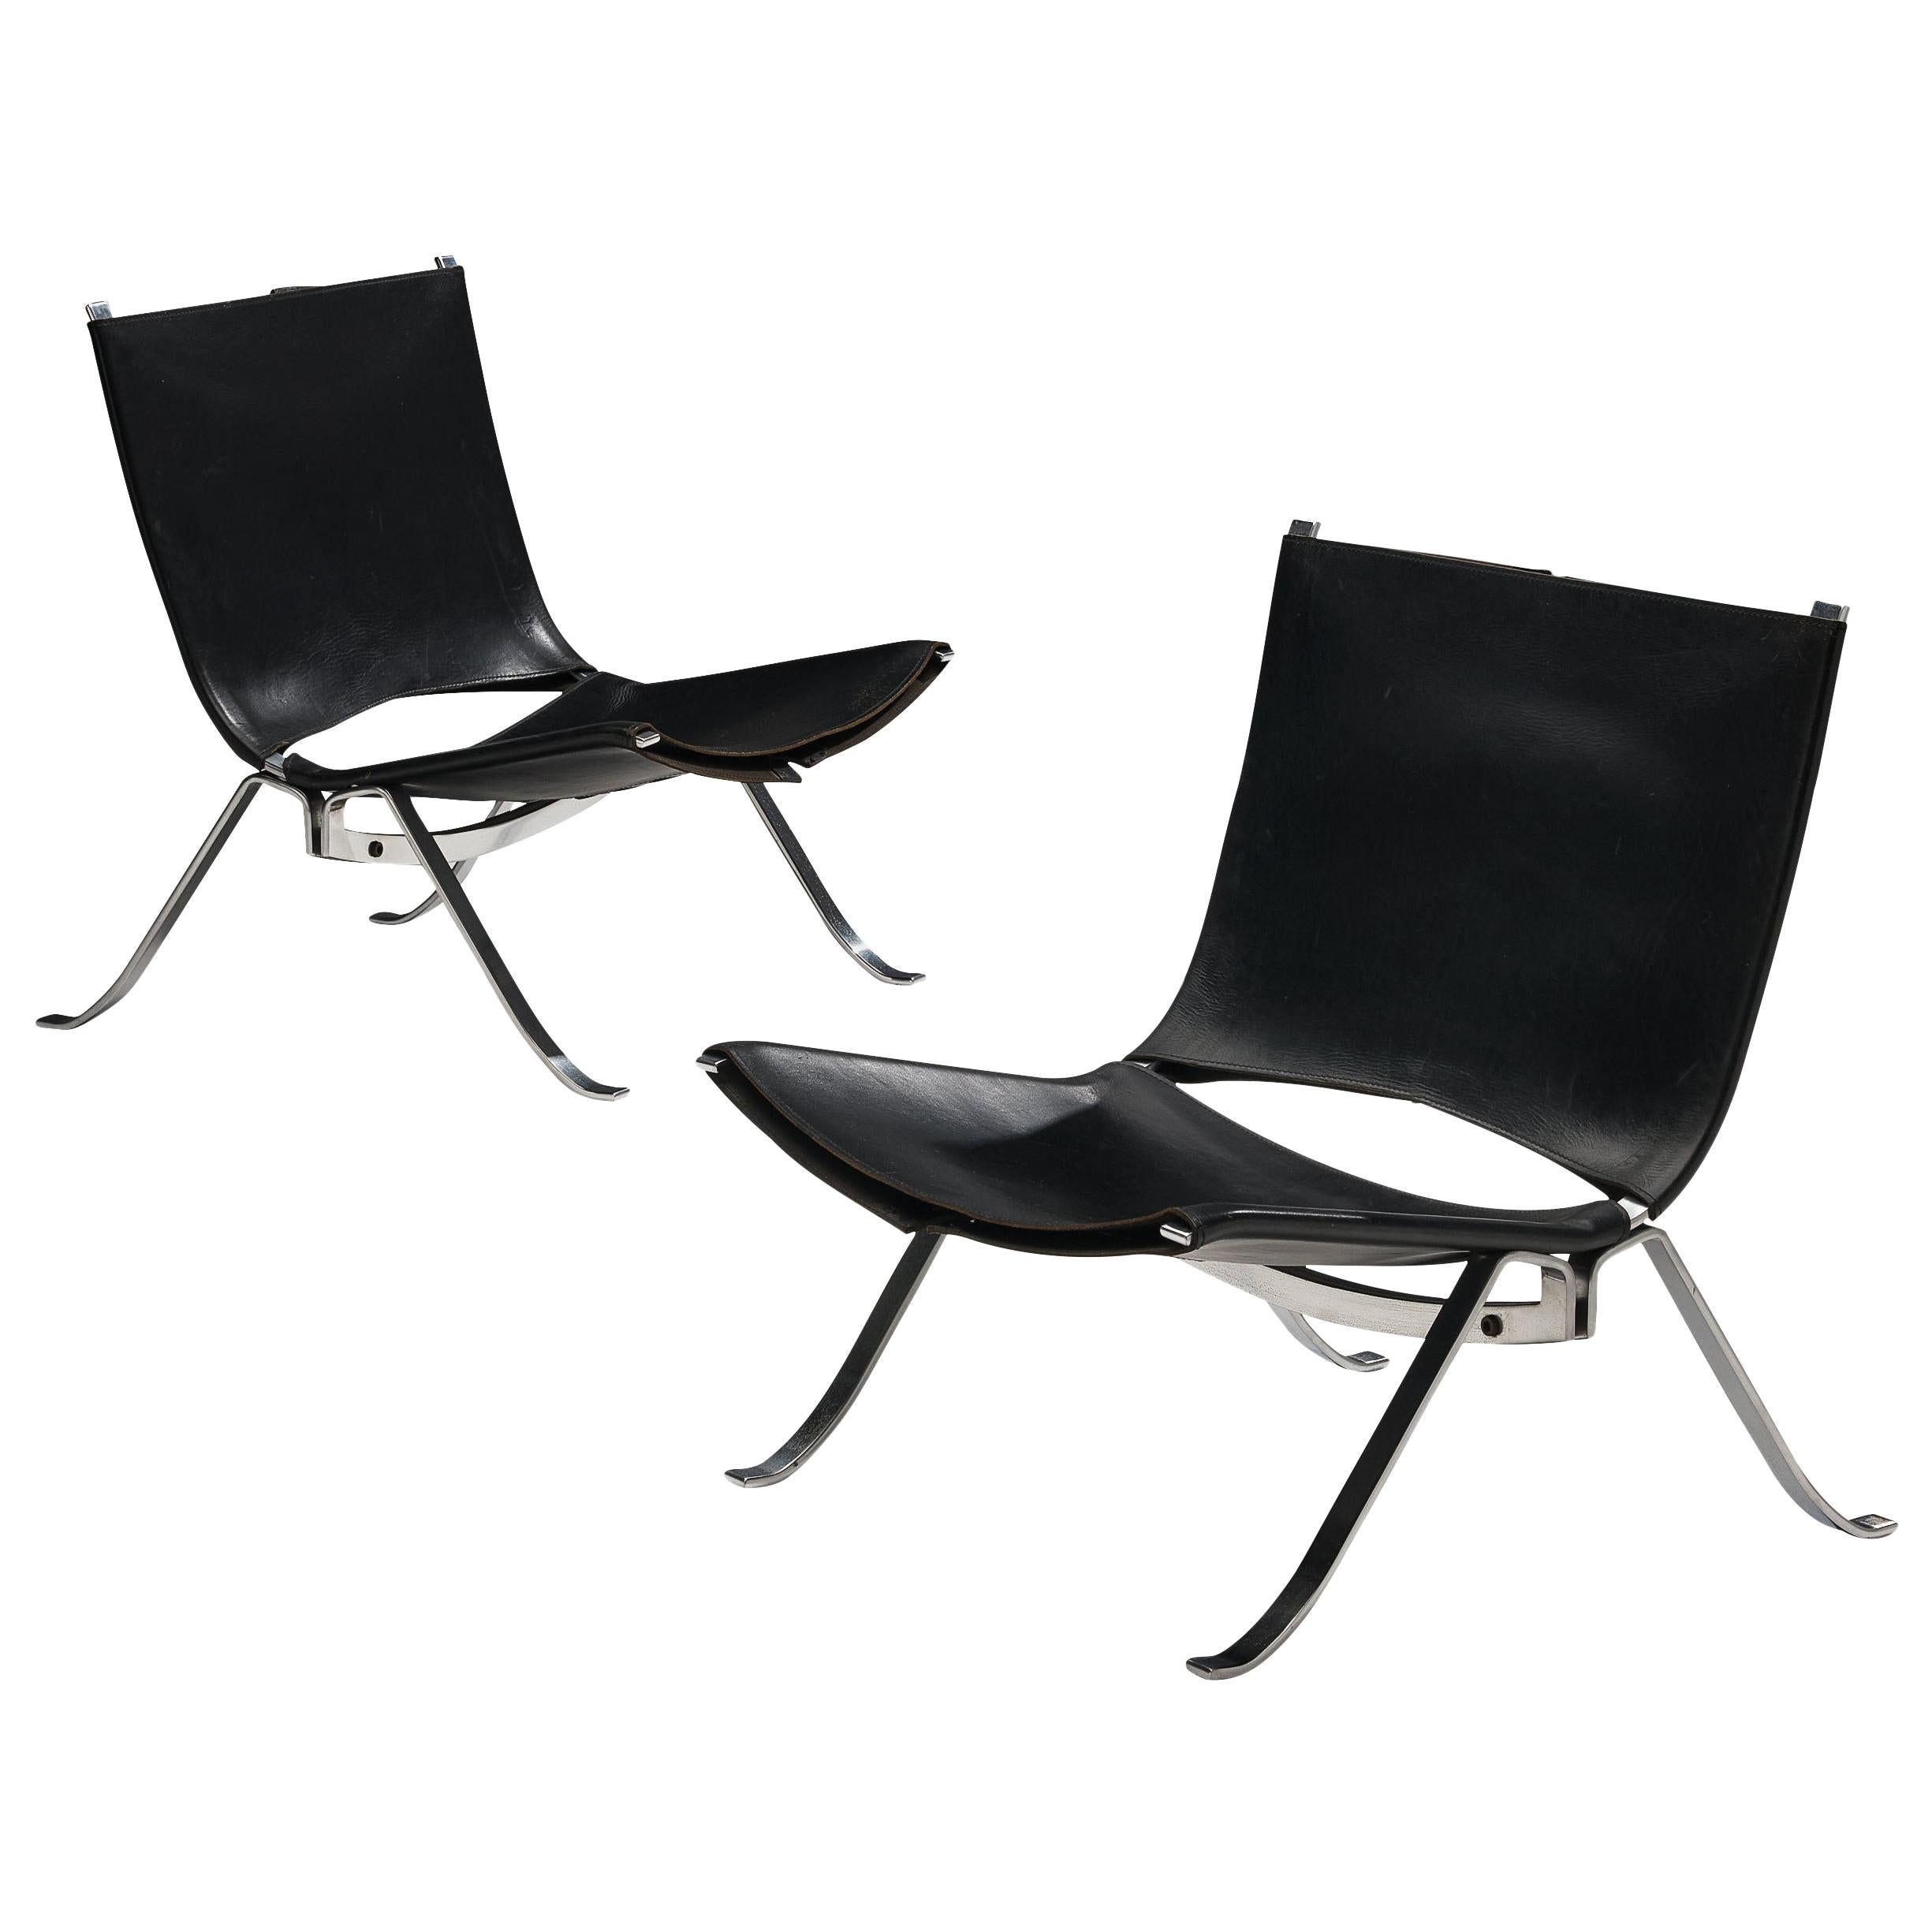 Preben Fabricius Set of Two Lounge Chairs in Black Leather